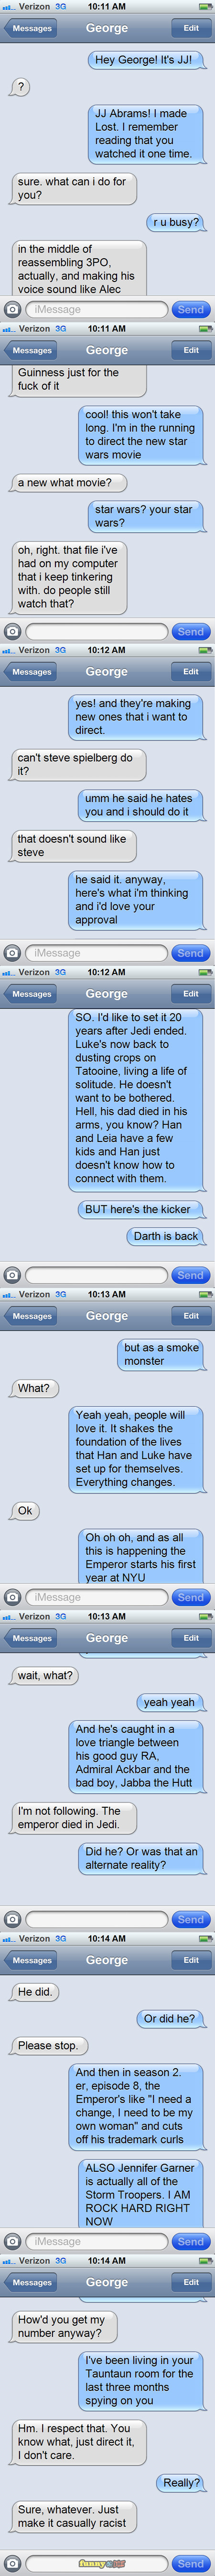 The iMessages conversation where George Lucas approved JJ Abrams for the new Star Wars movie